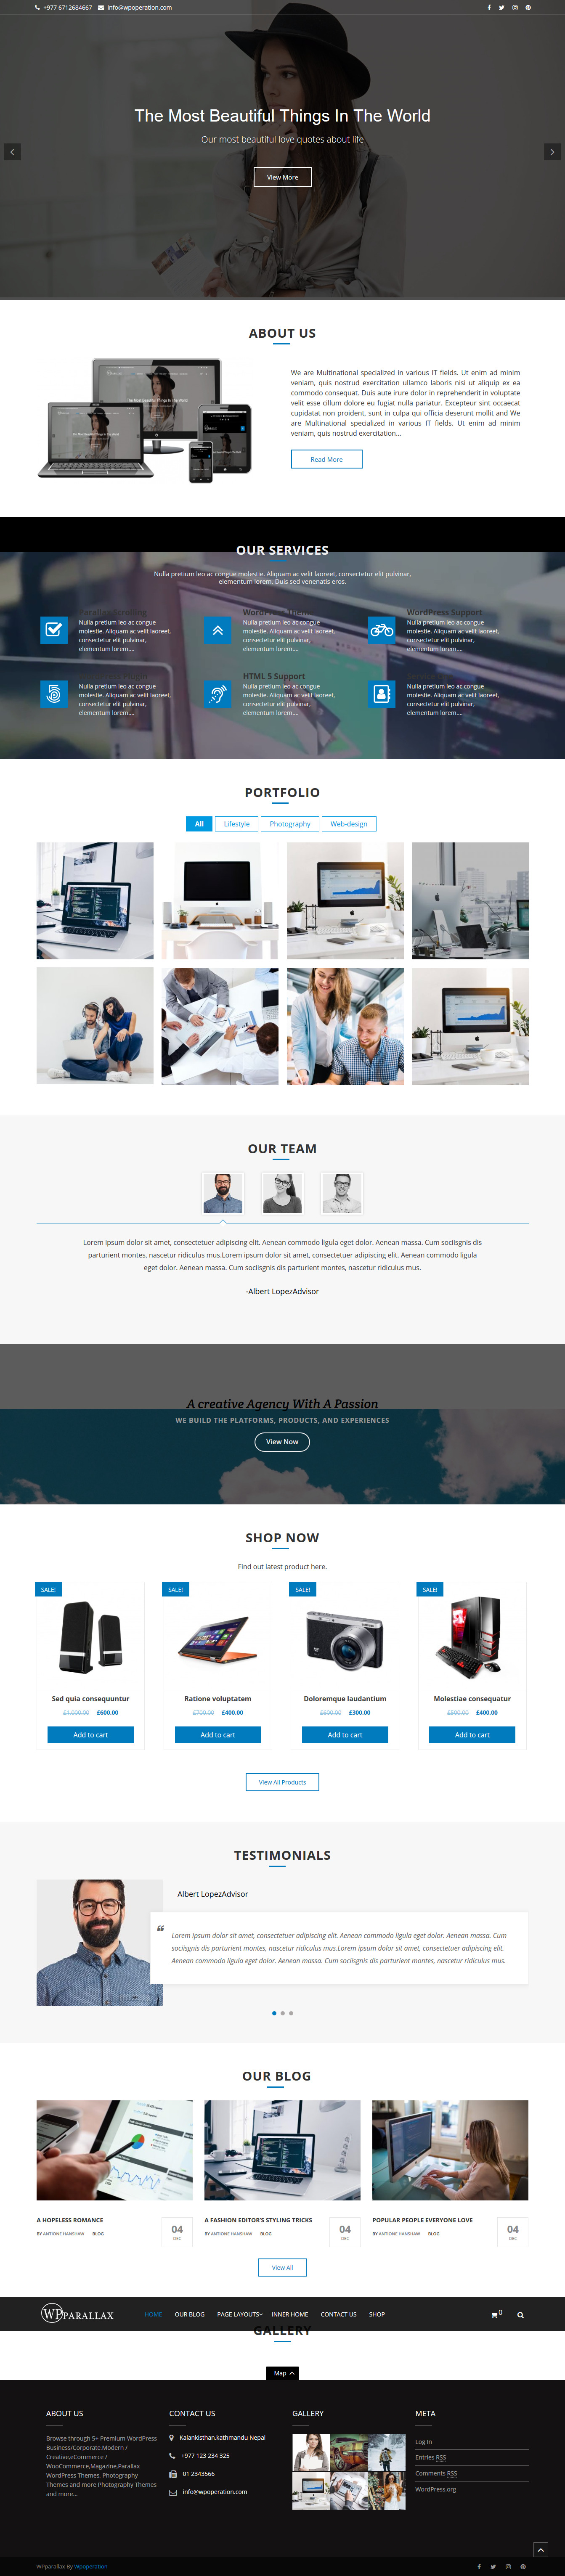 wpparallax best free parallax wordpress themes - 10+ Best Free Parallax WordPress Themes and Templates